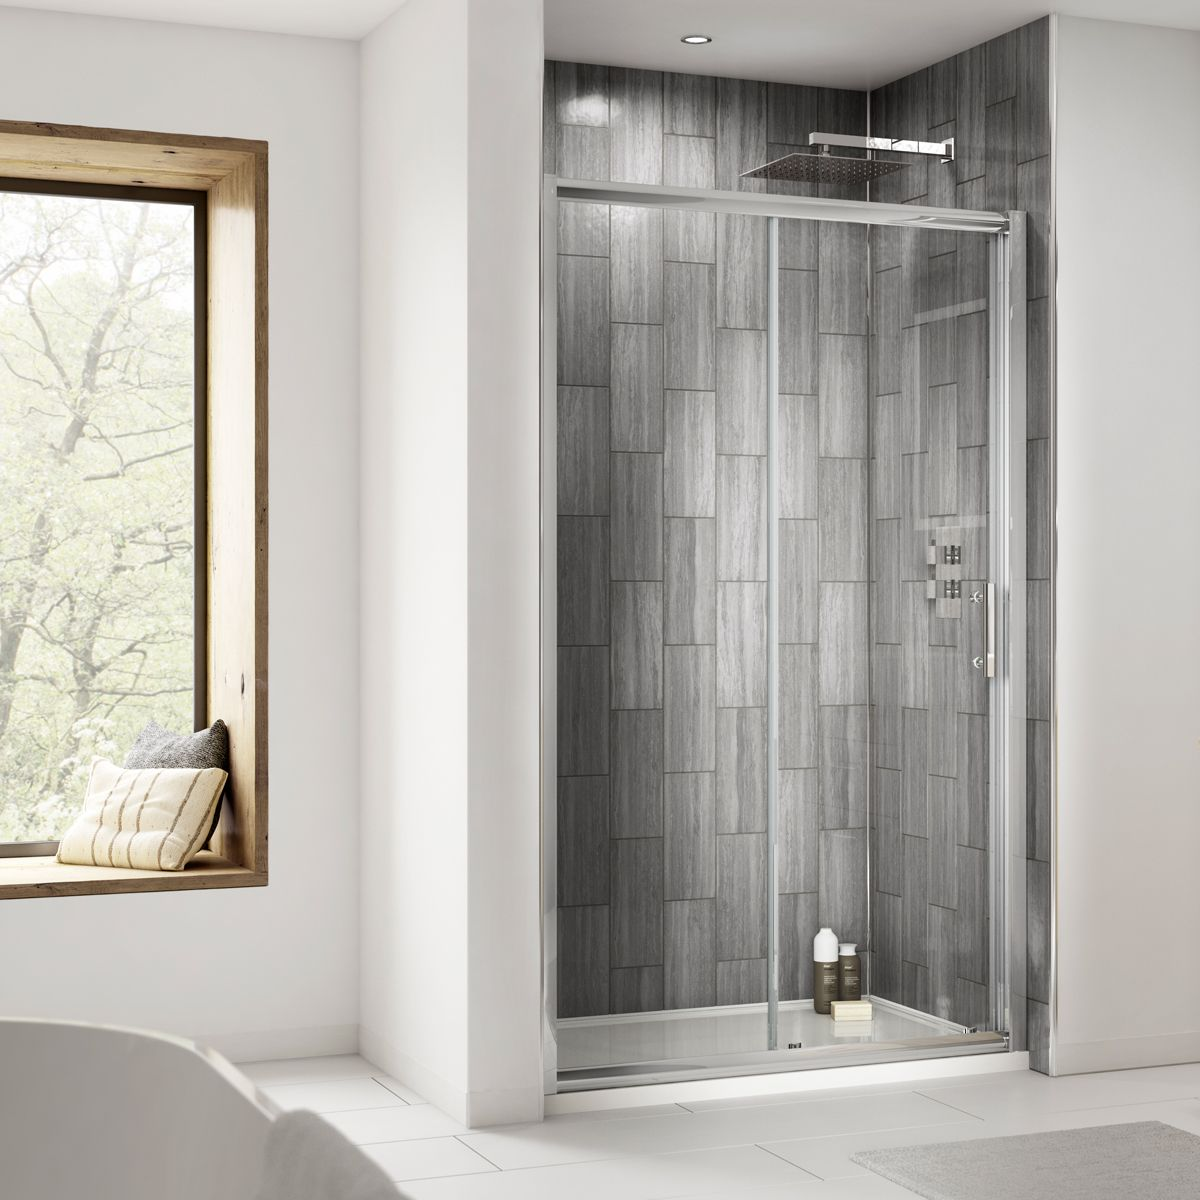 Nuie Pacific Single Sliding Shower Door with Optional Side Panel Recess